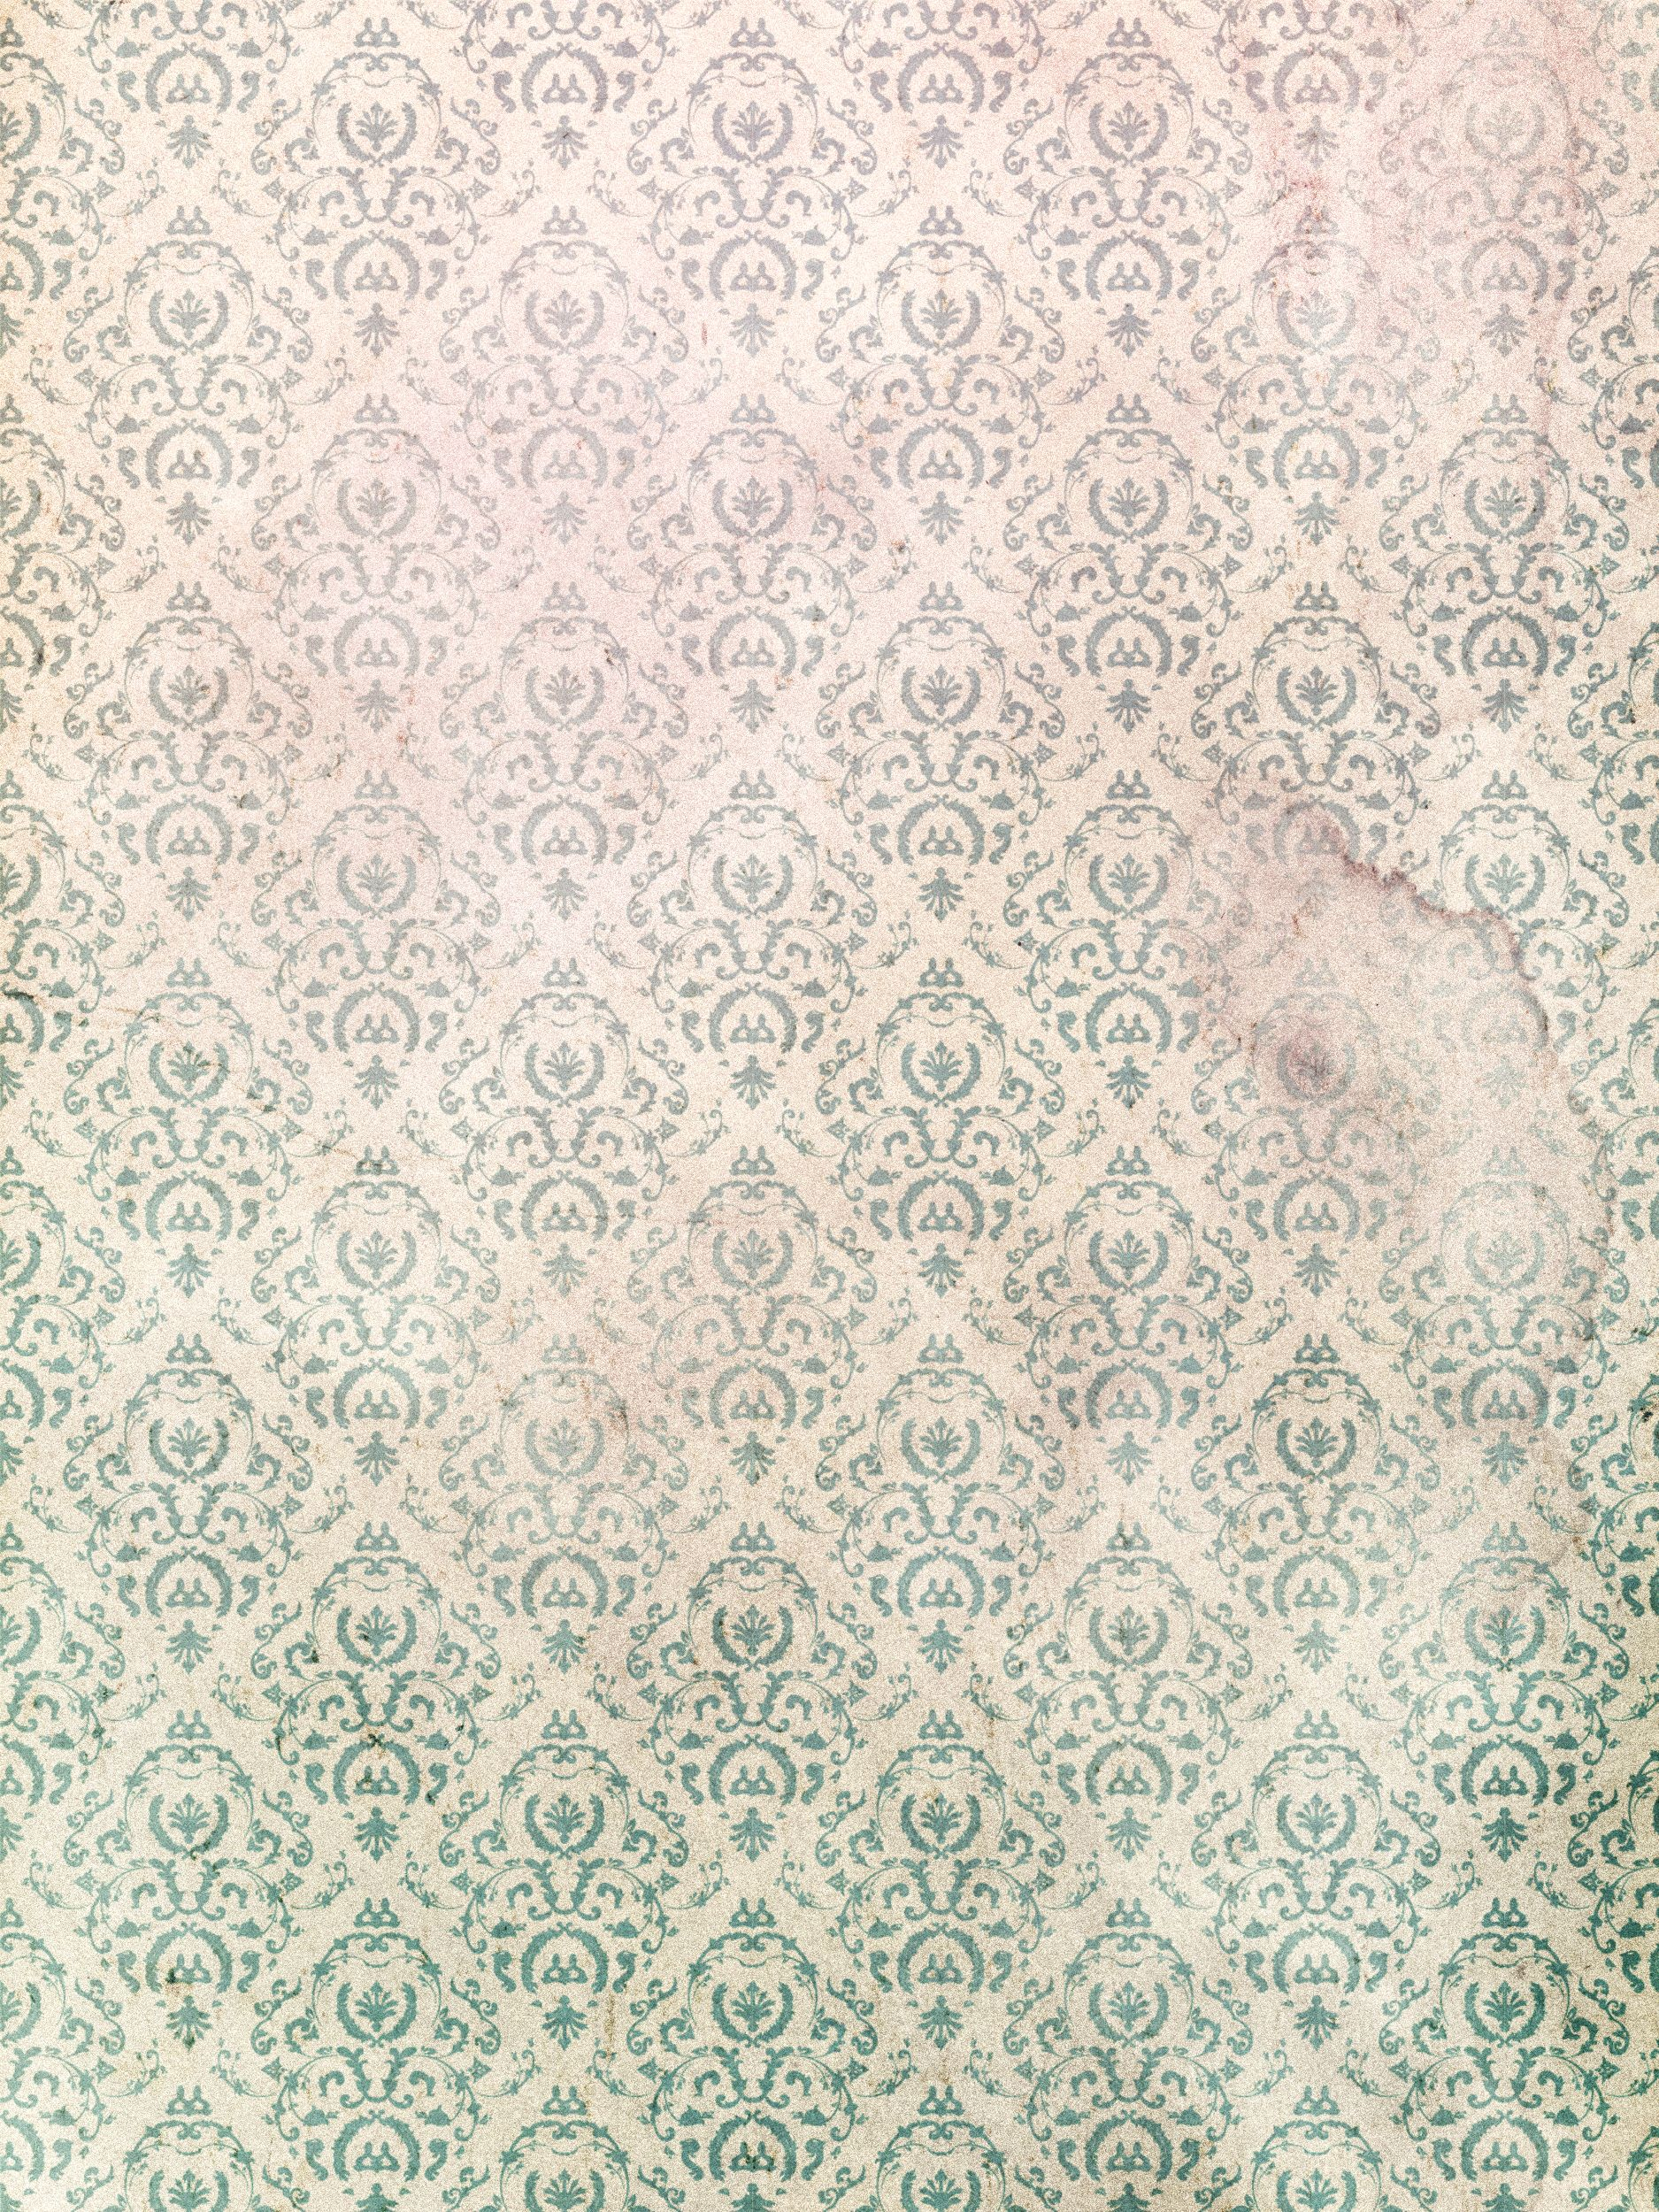 Free vintage pattern wallpaper texture texture l t for Textured kitchen wallpaper